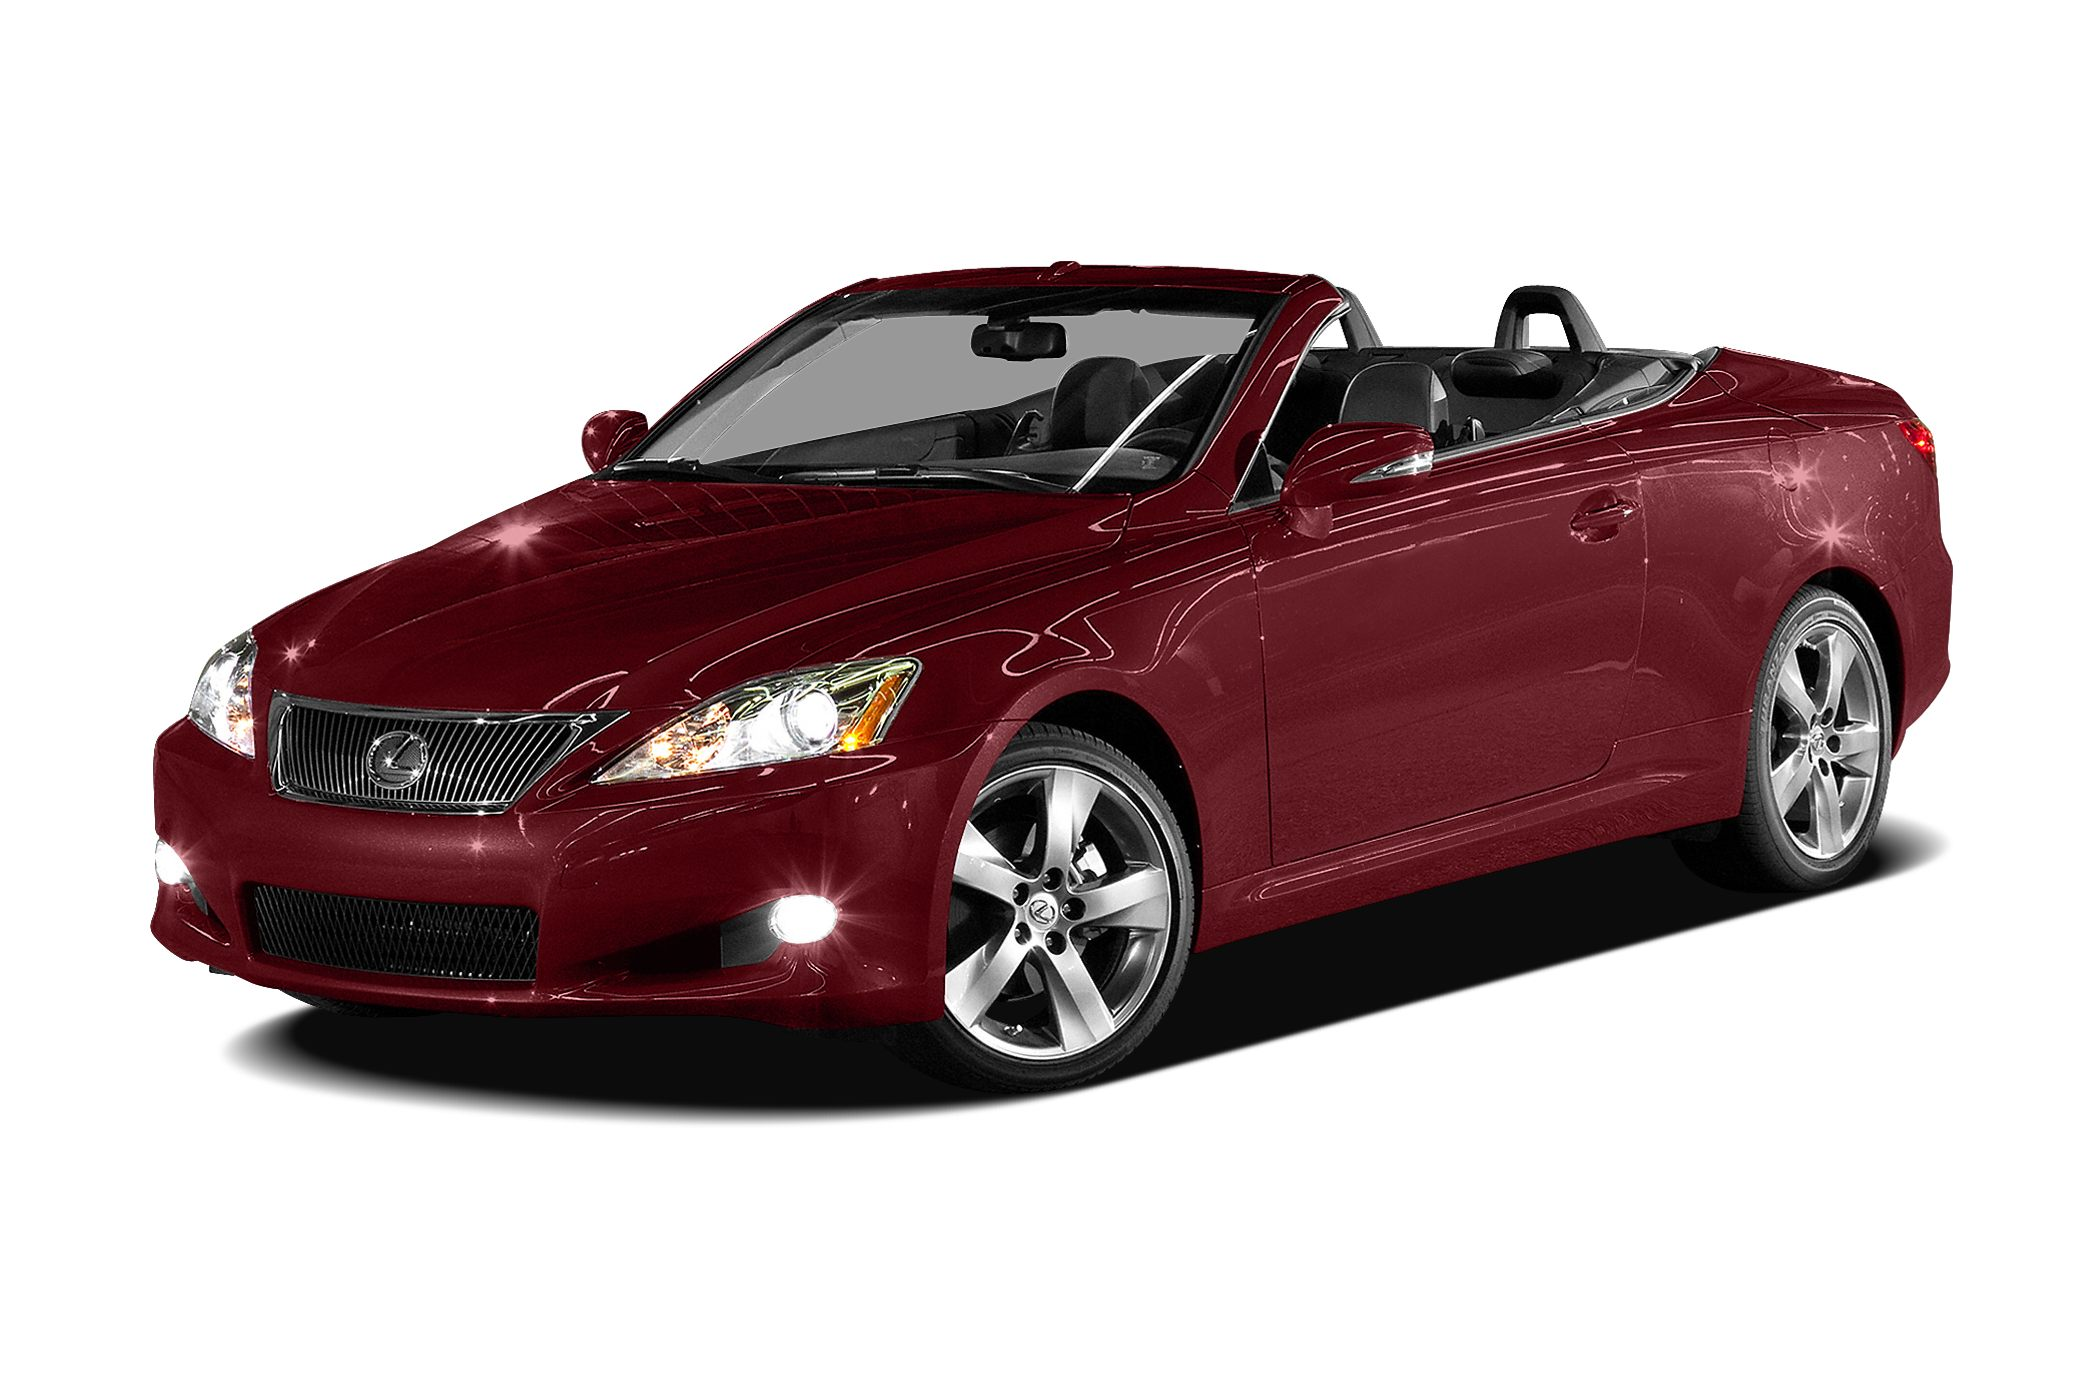 2010 Lexus IS 250C Convertible for sale in Loris for $25,450 with 60,250 miles.